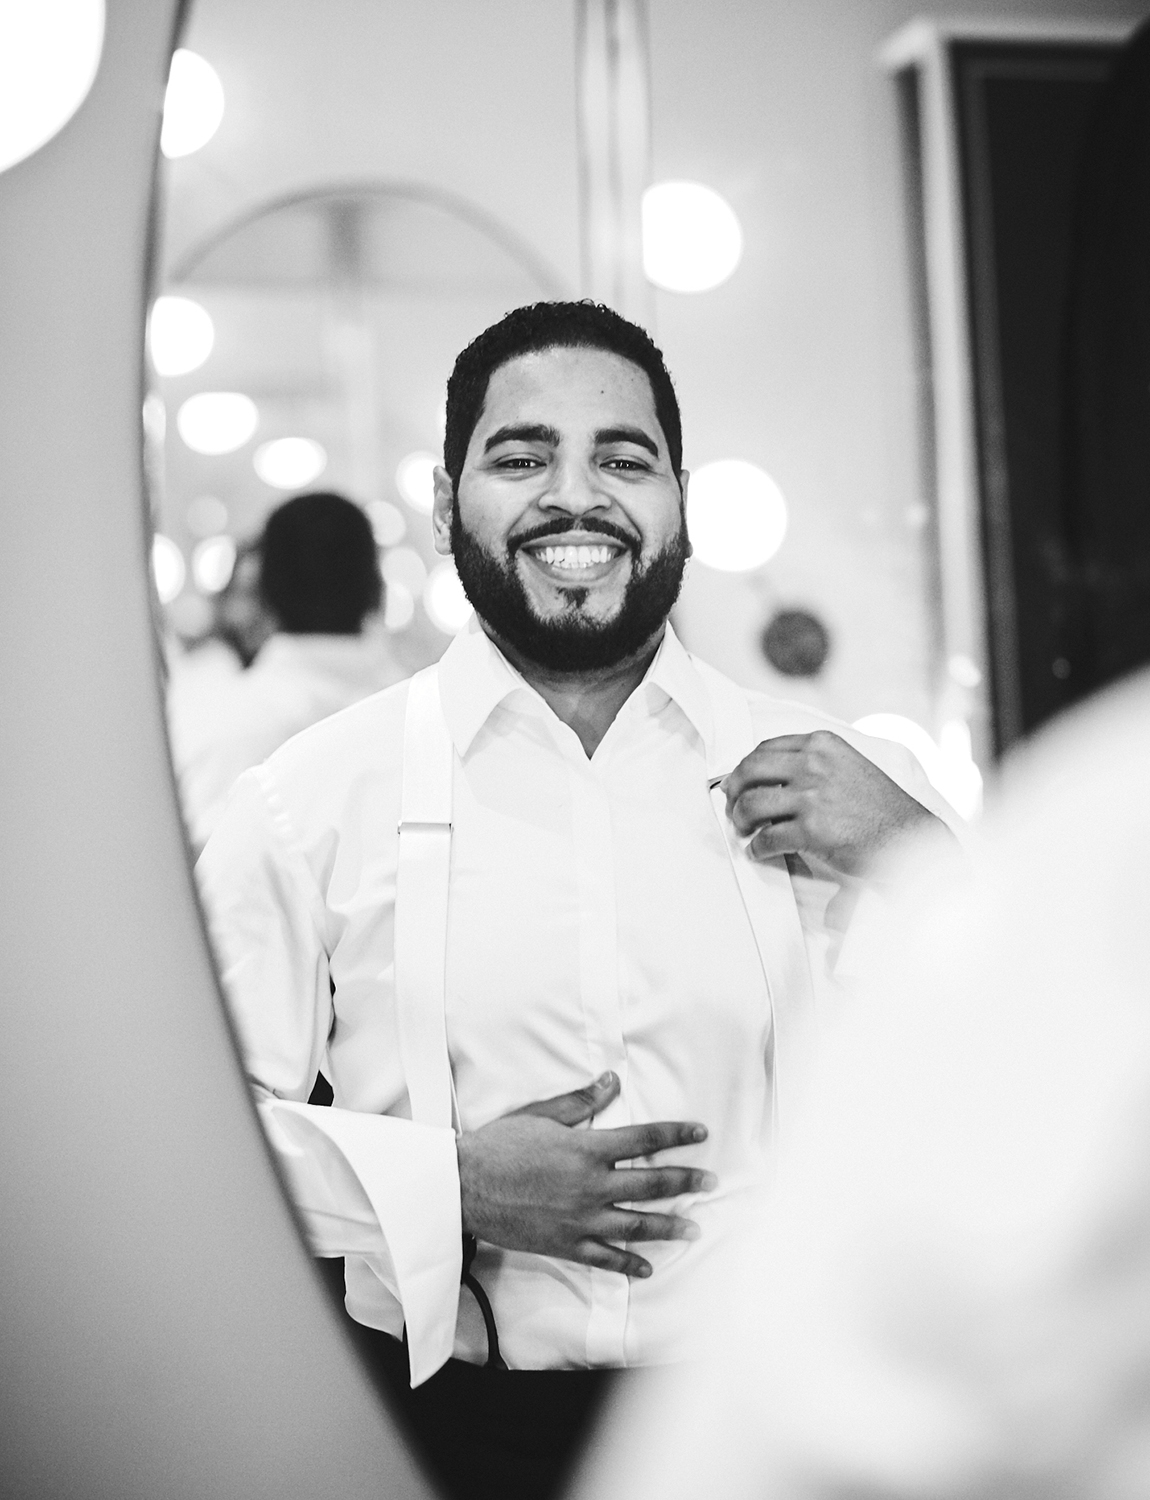 170930_WilliamValeWeddingPhotography_BrooklynWeddingPhotographer_By_BriJohnsonWeddings_0006.jpg